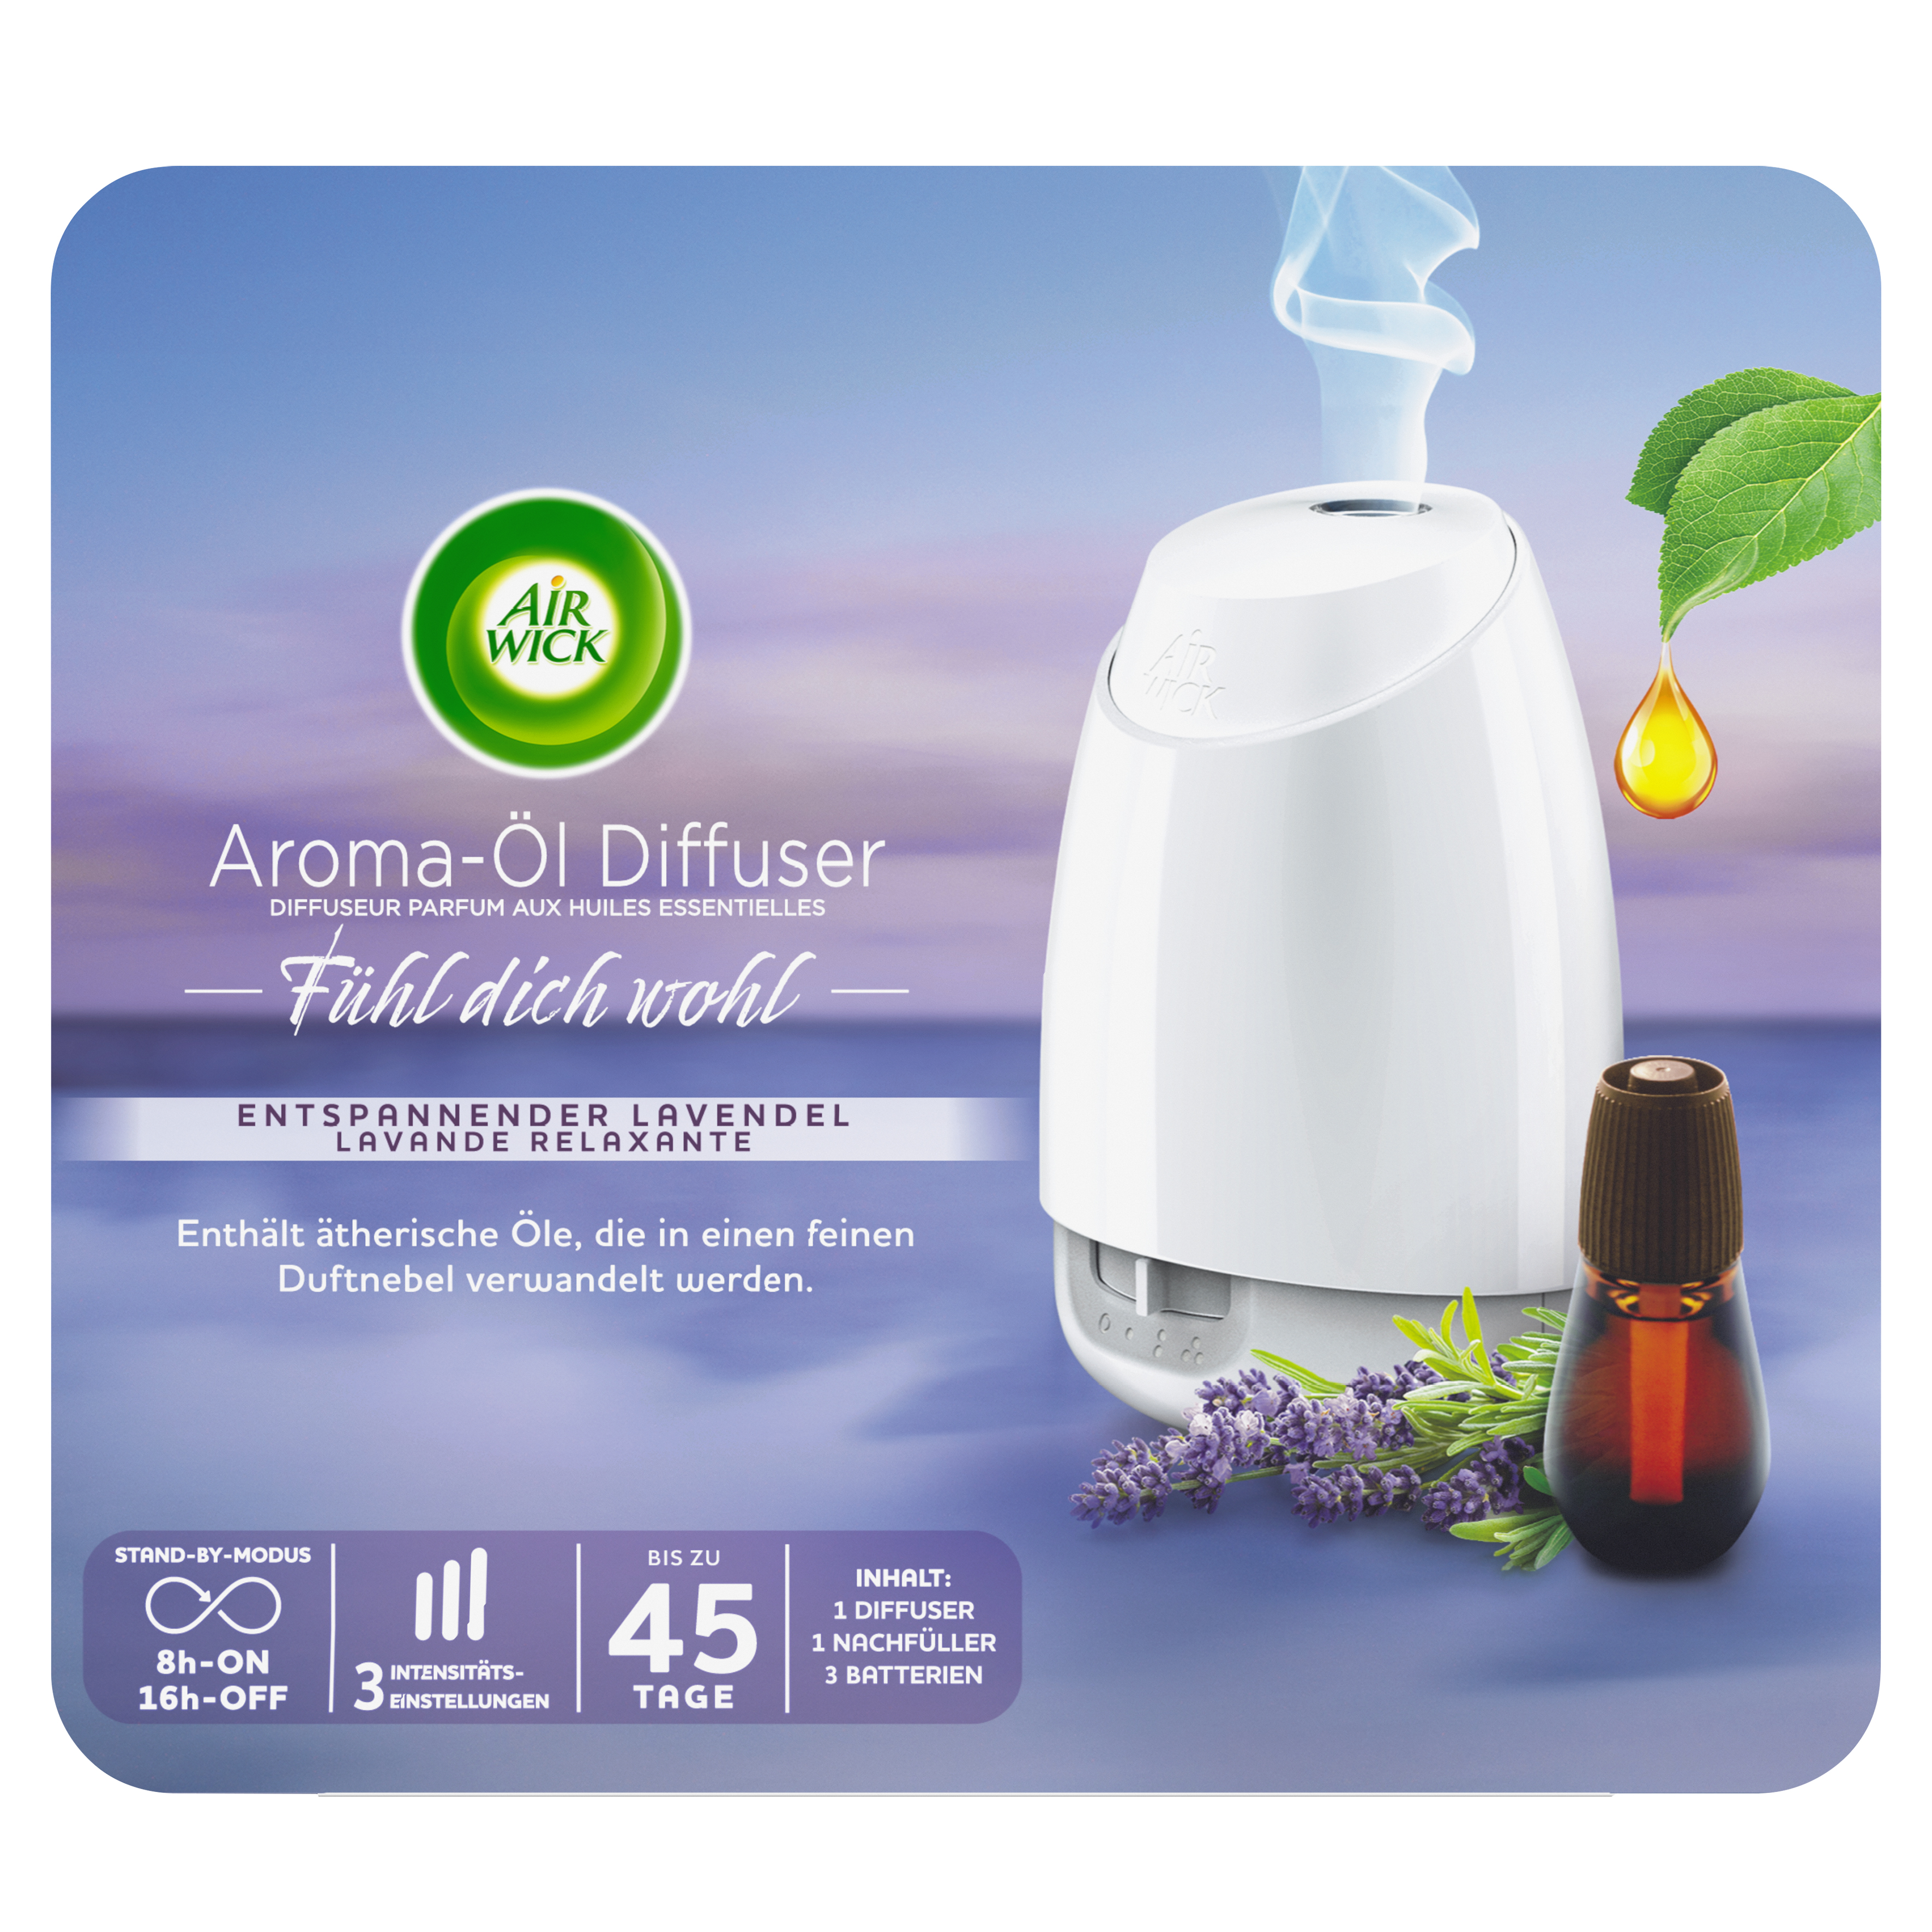 Air Wick Aroma-Öl Diffuser Entspannender Lavendel